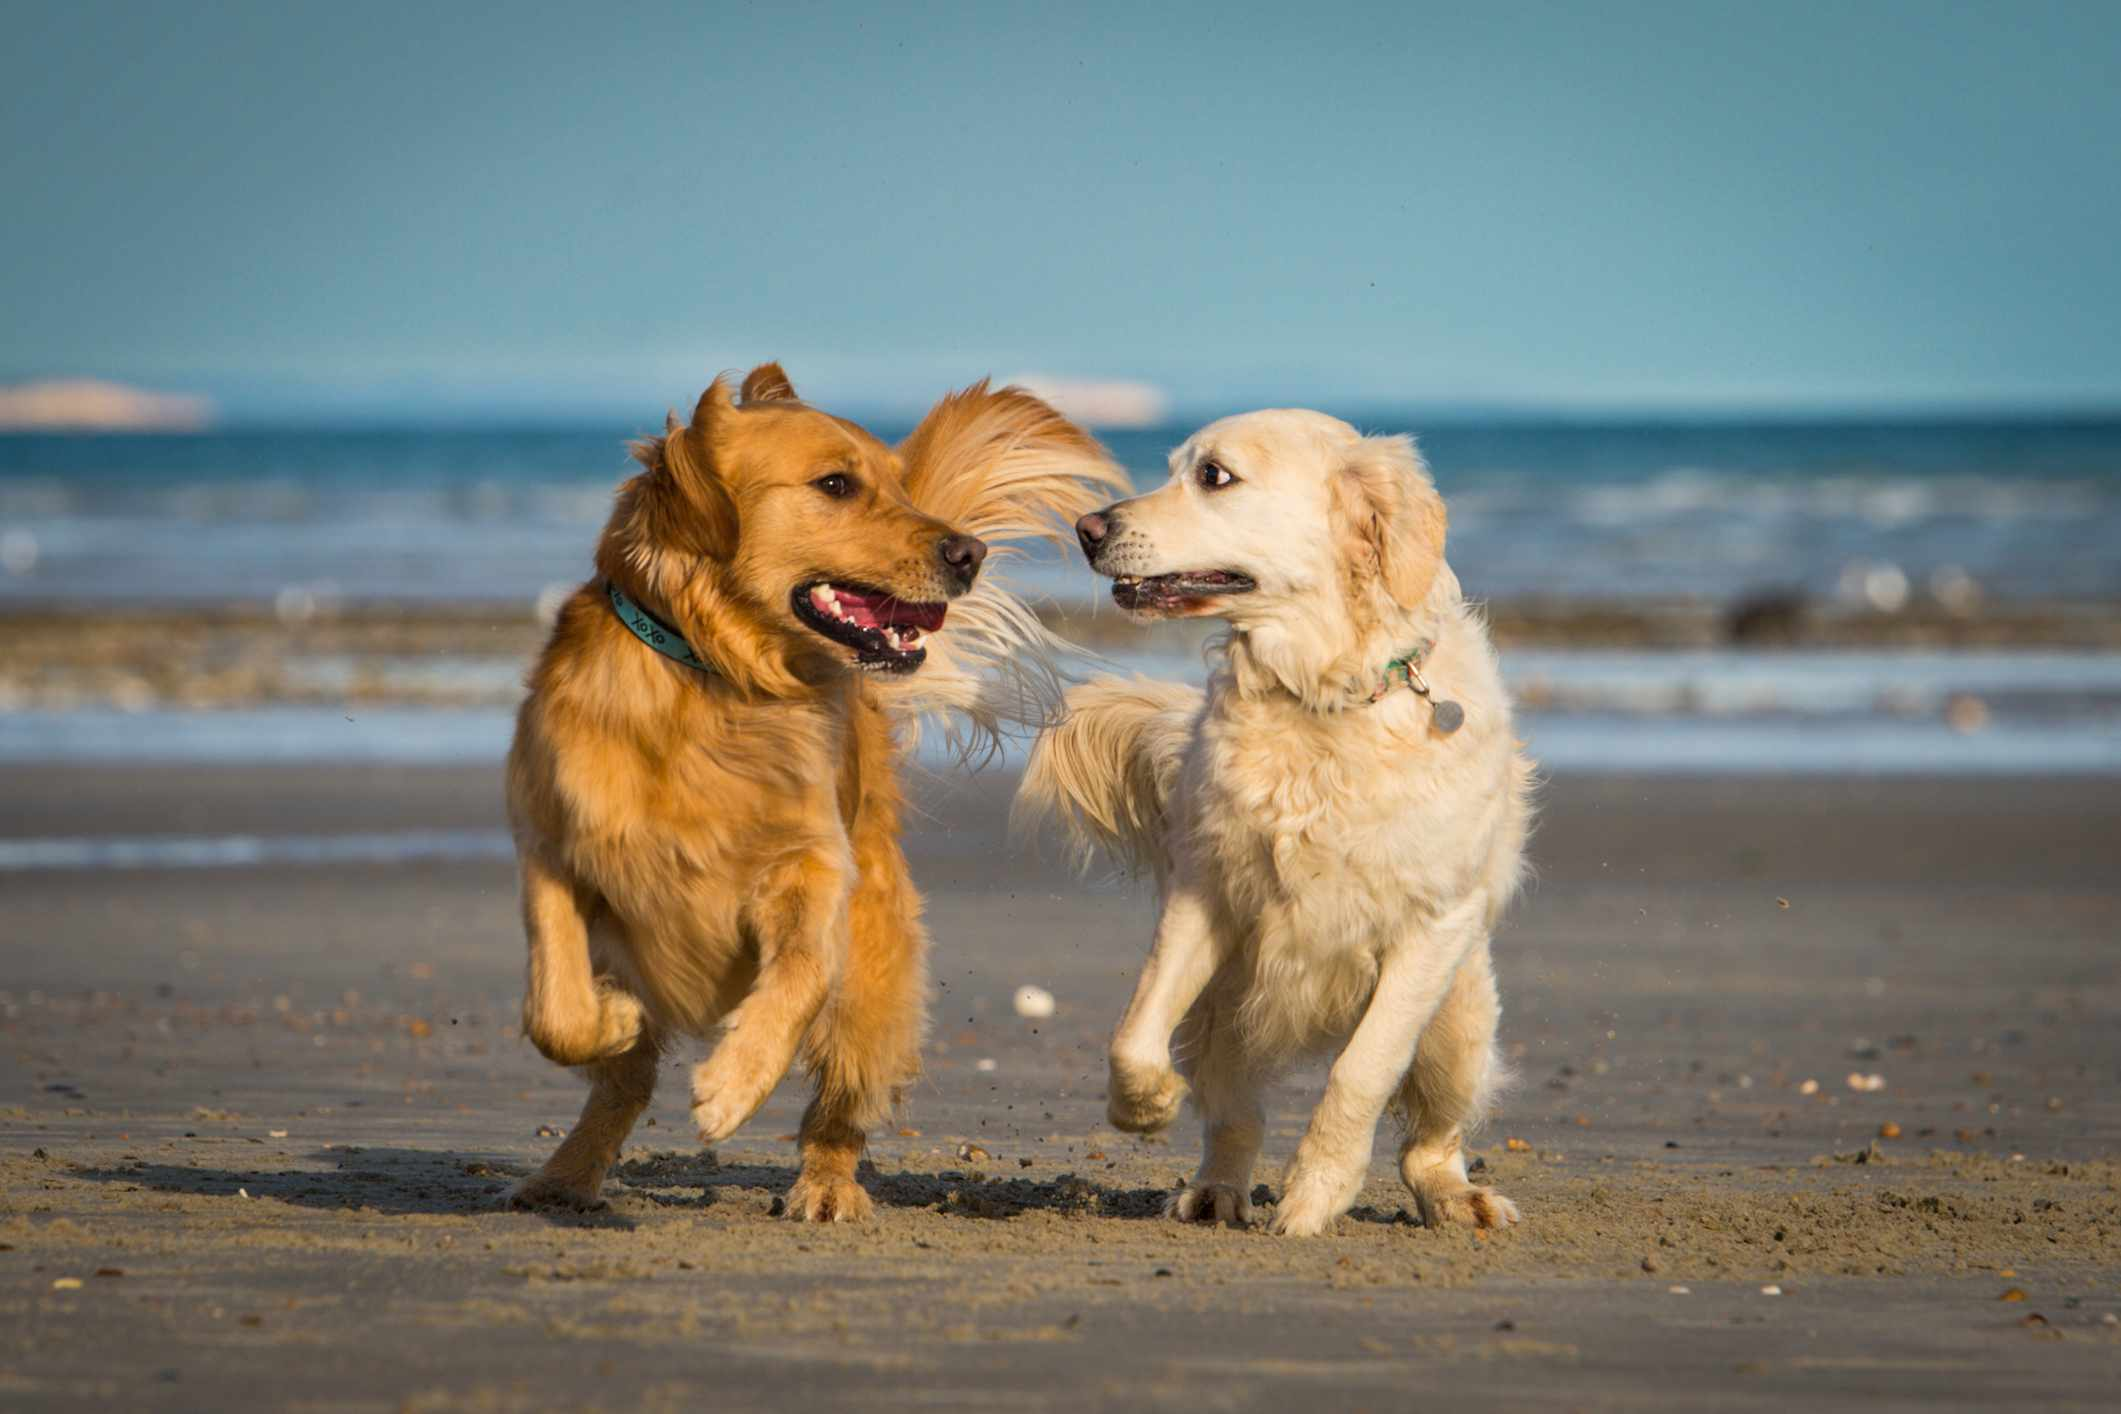 Two golden retrievers playing together on the beach.